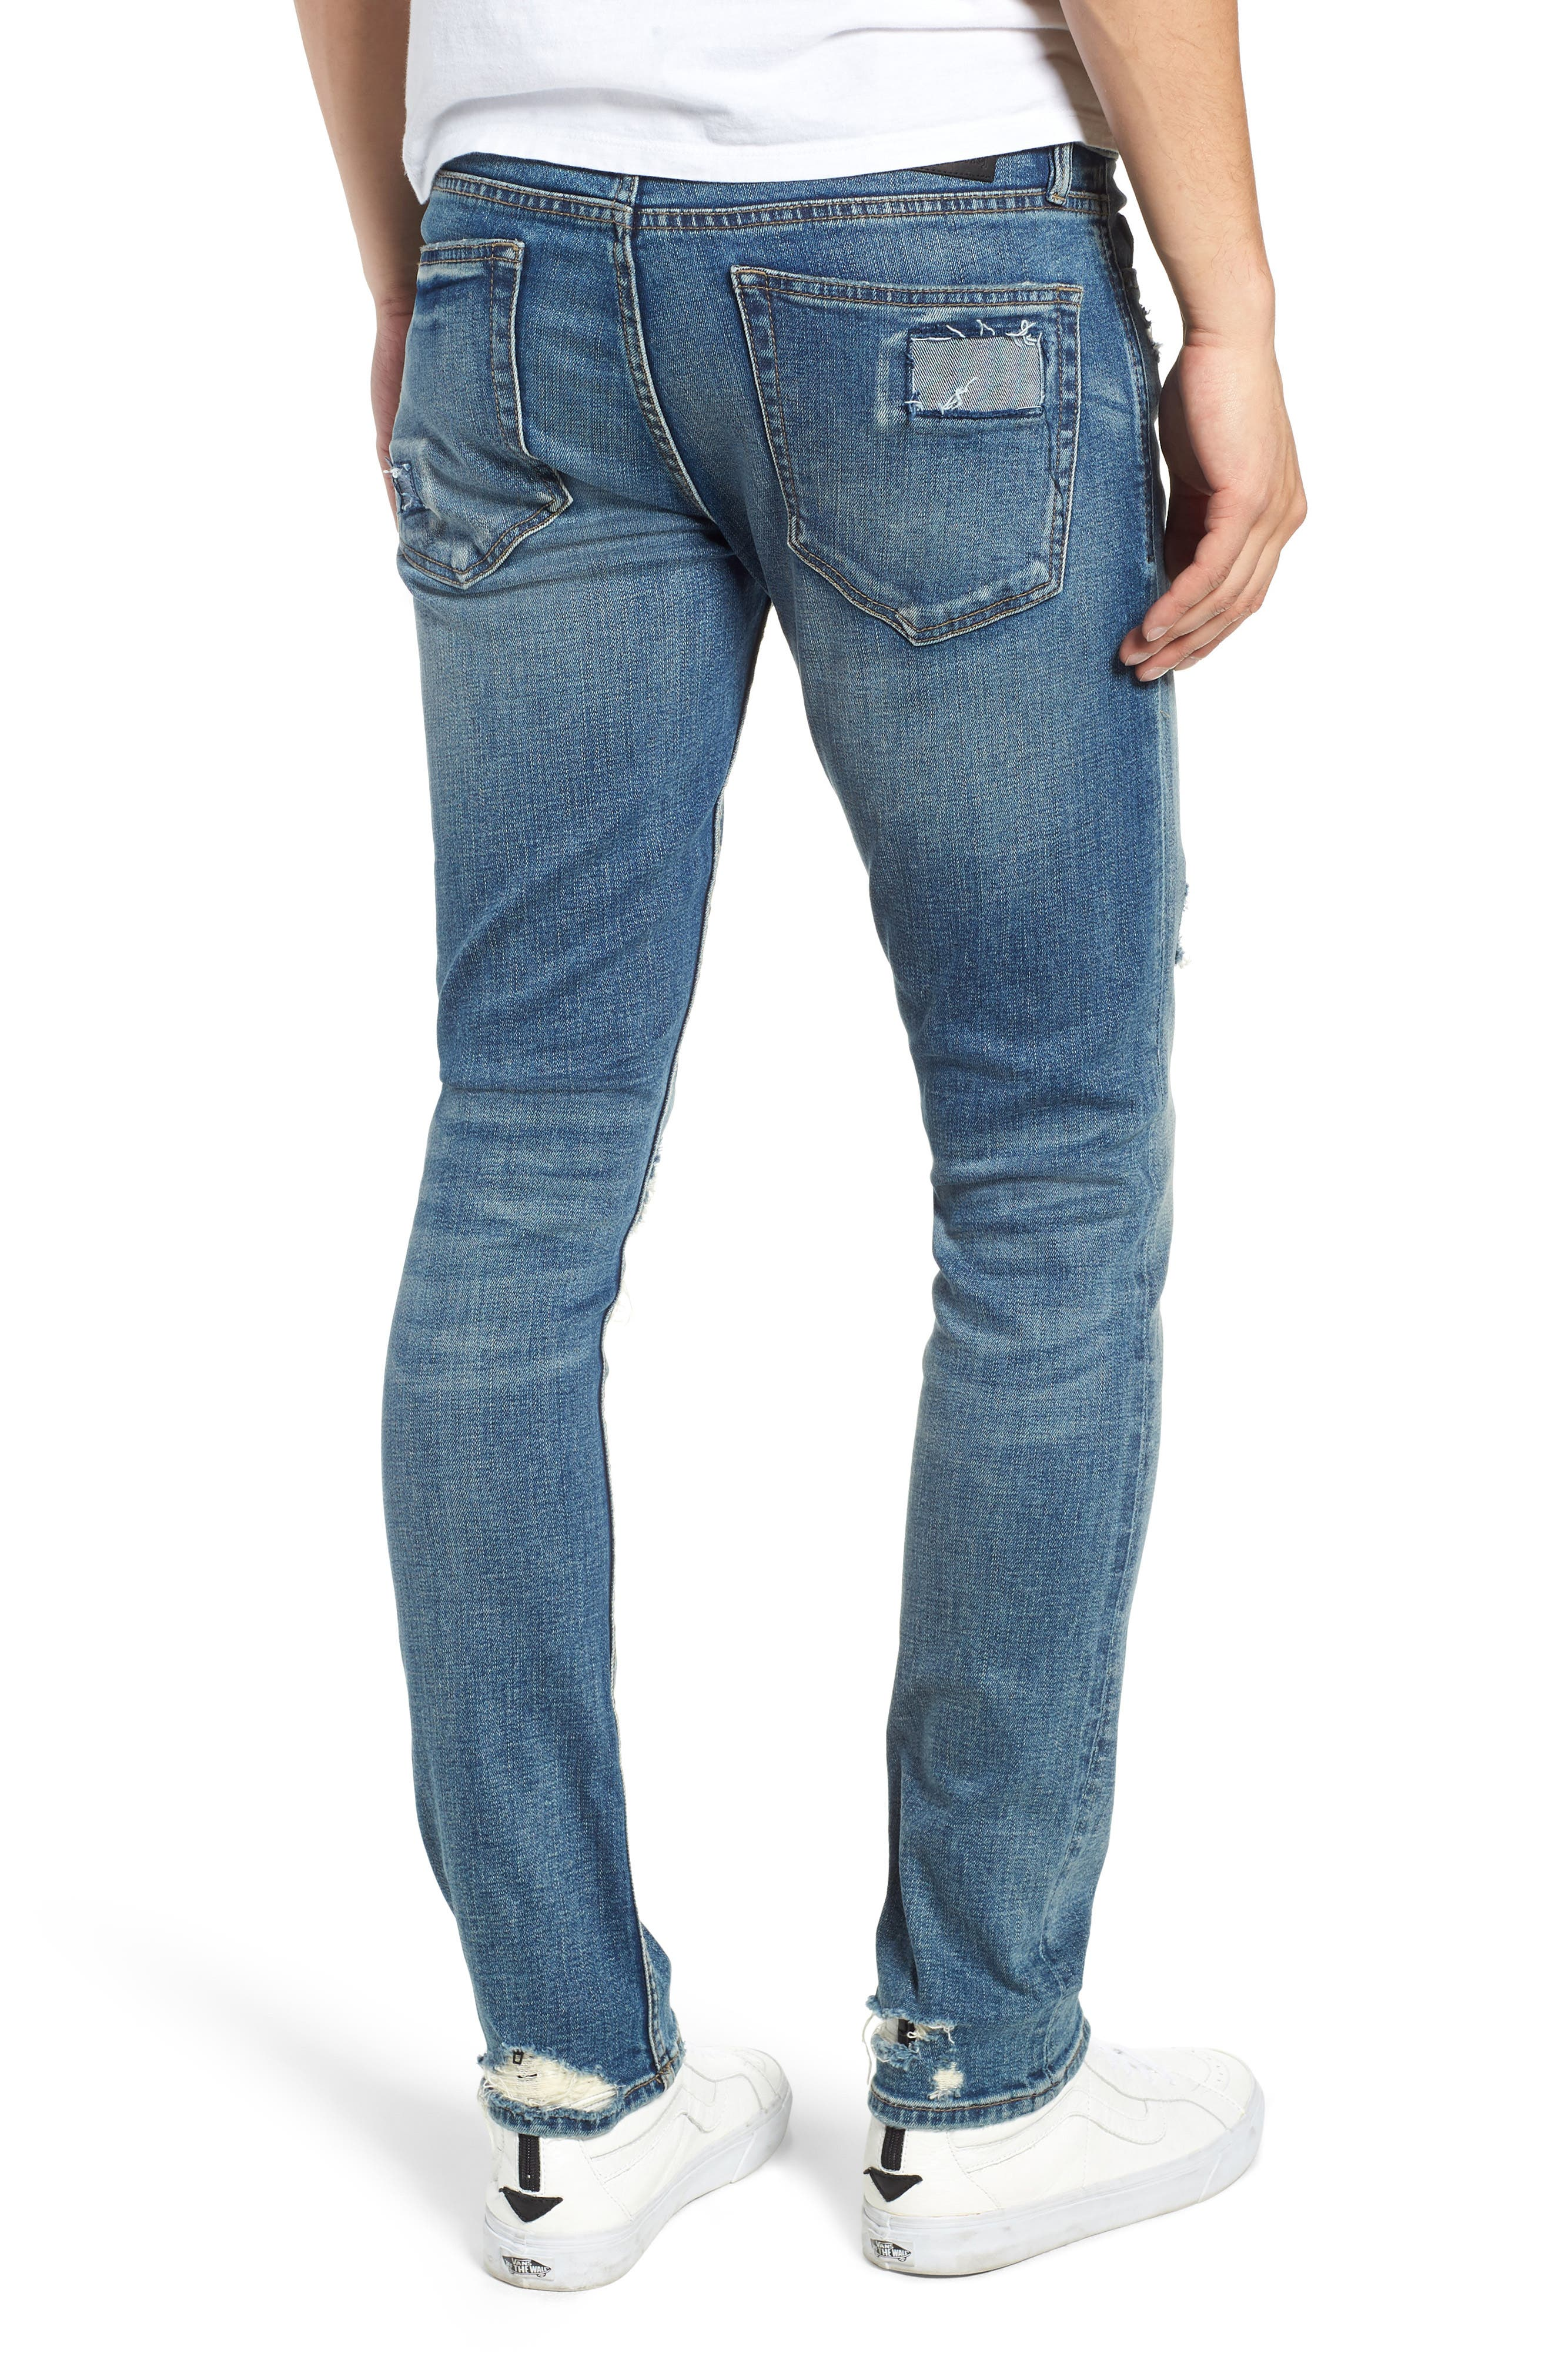 Horatio Skinny Fit Jeans,                             Alternate thumbnail 2, color,                             SUDDEN PROFIT